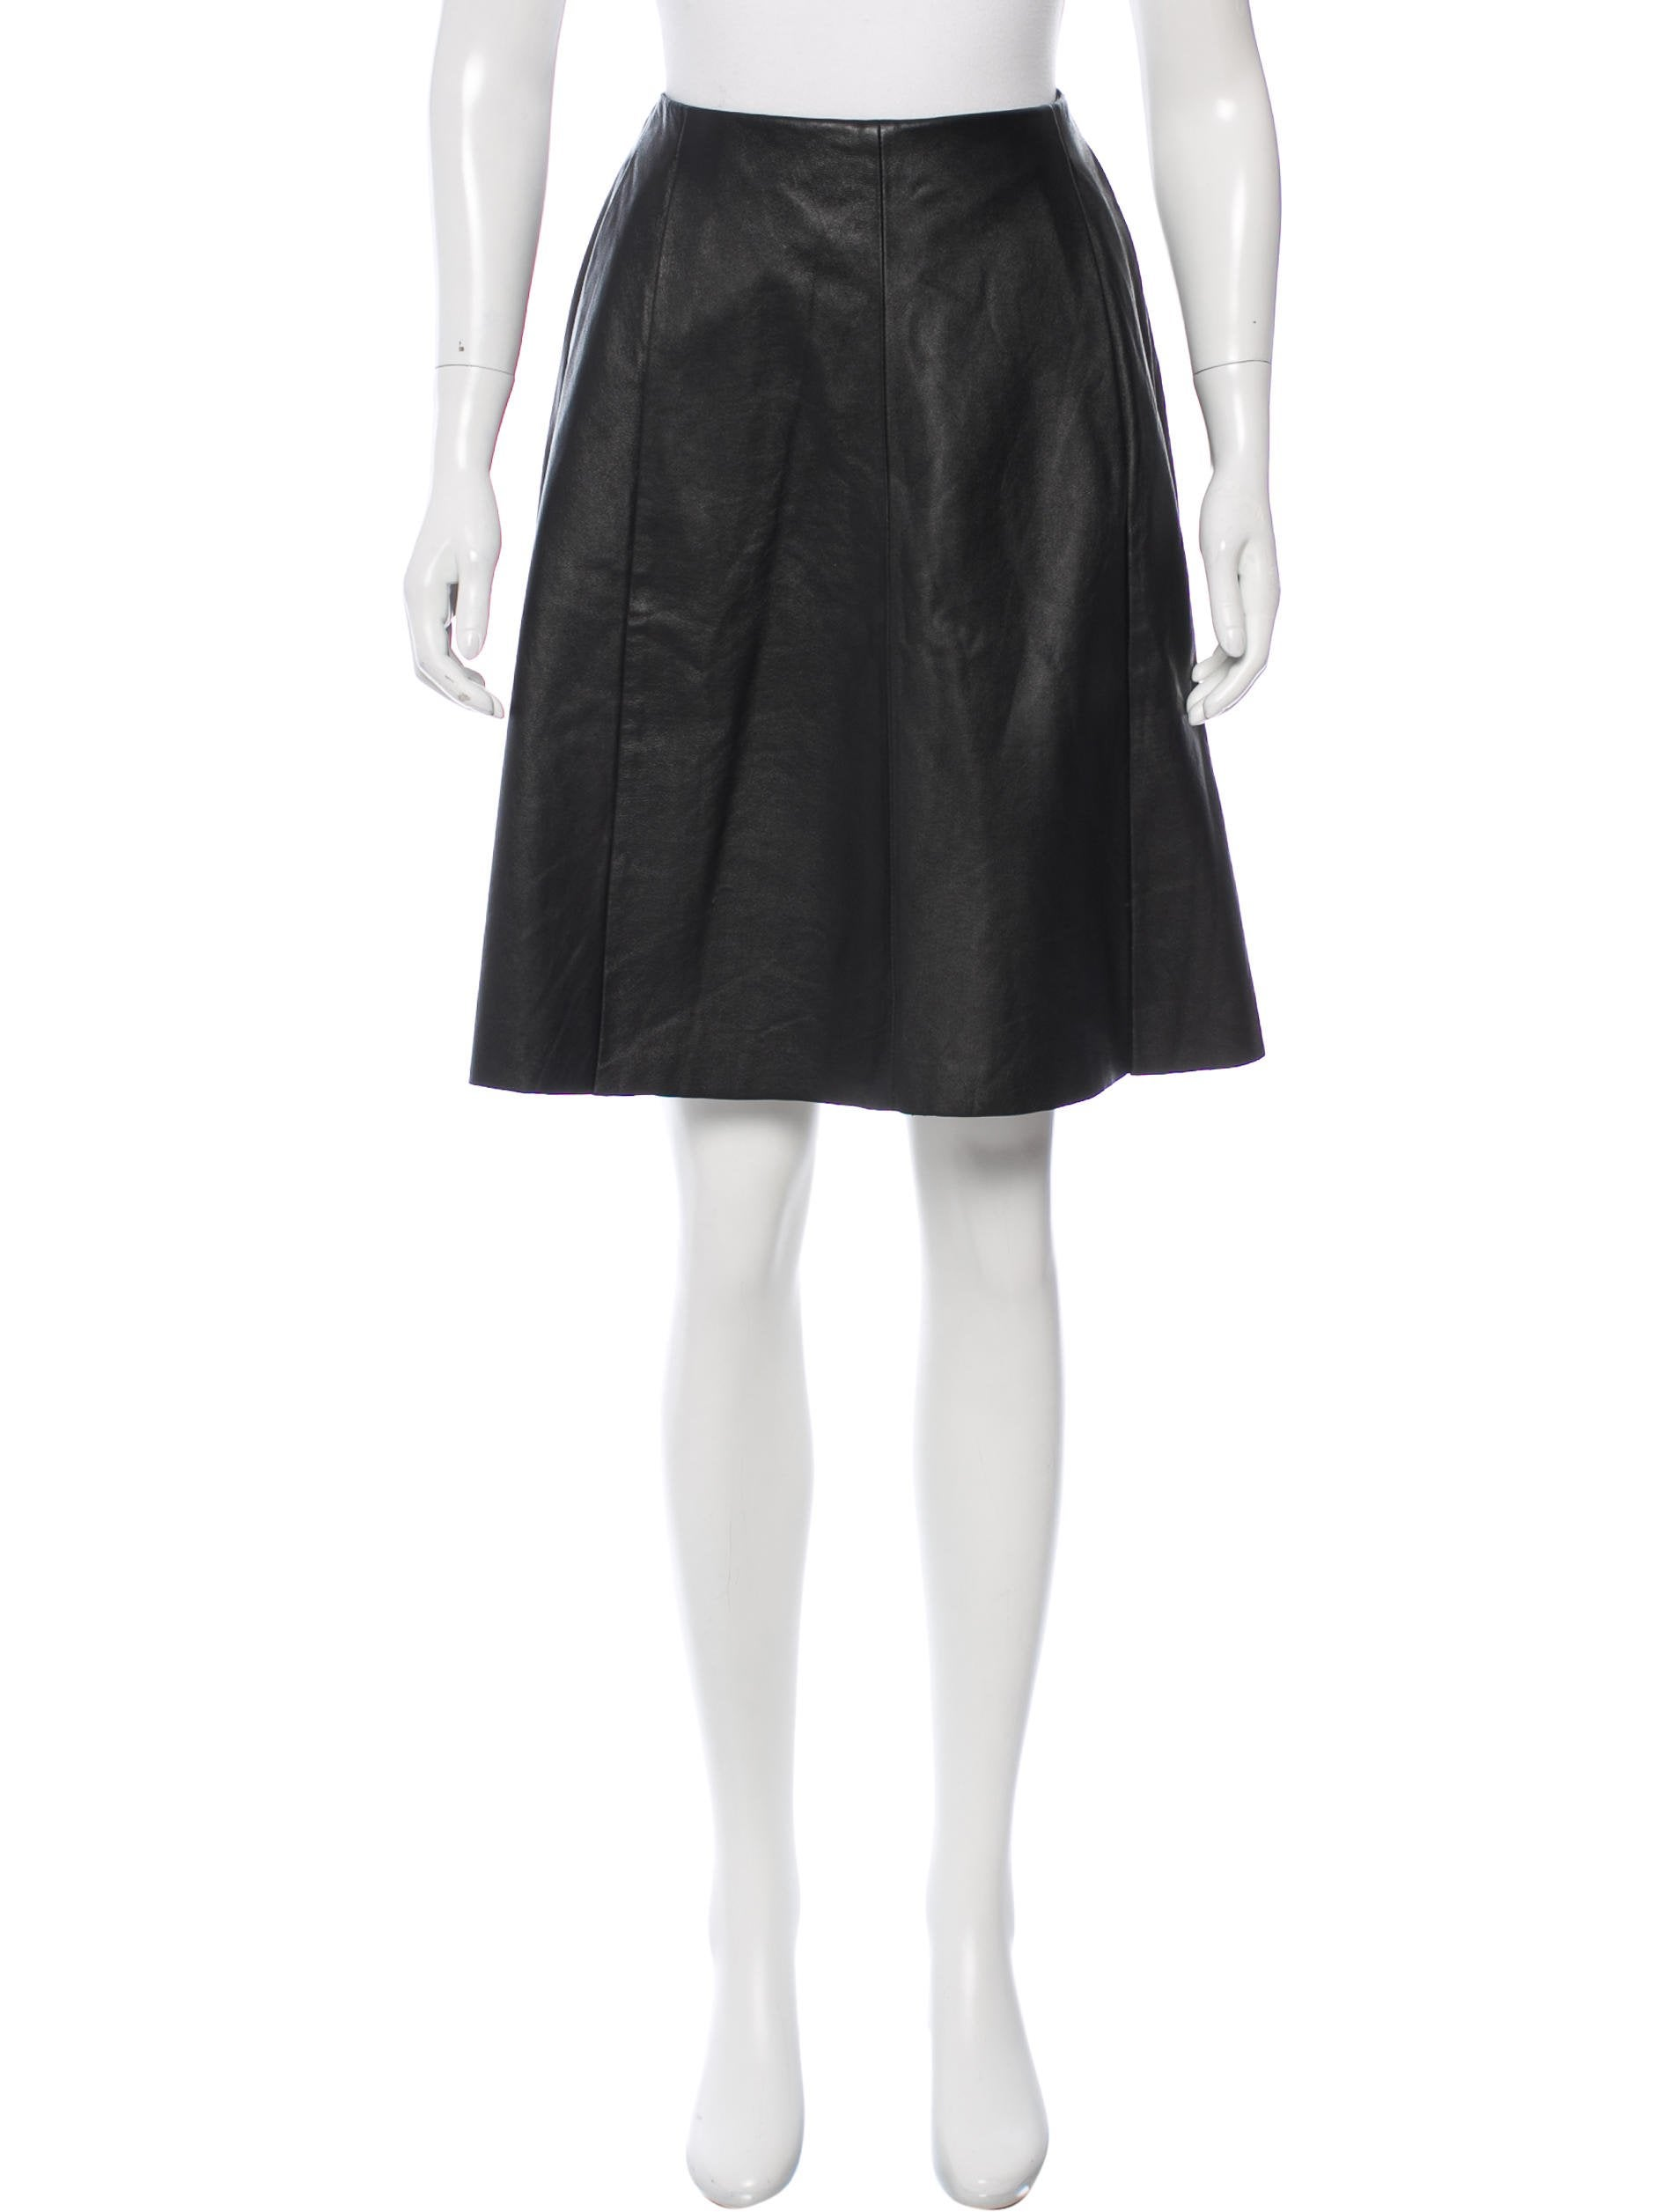 joie leather a line skirt clothing wj221173 the realreal